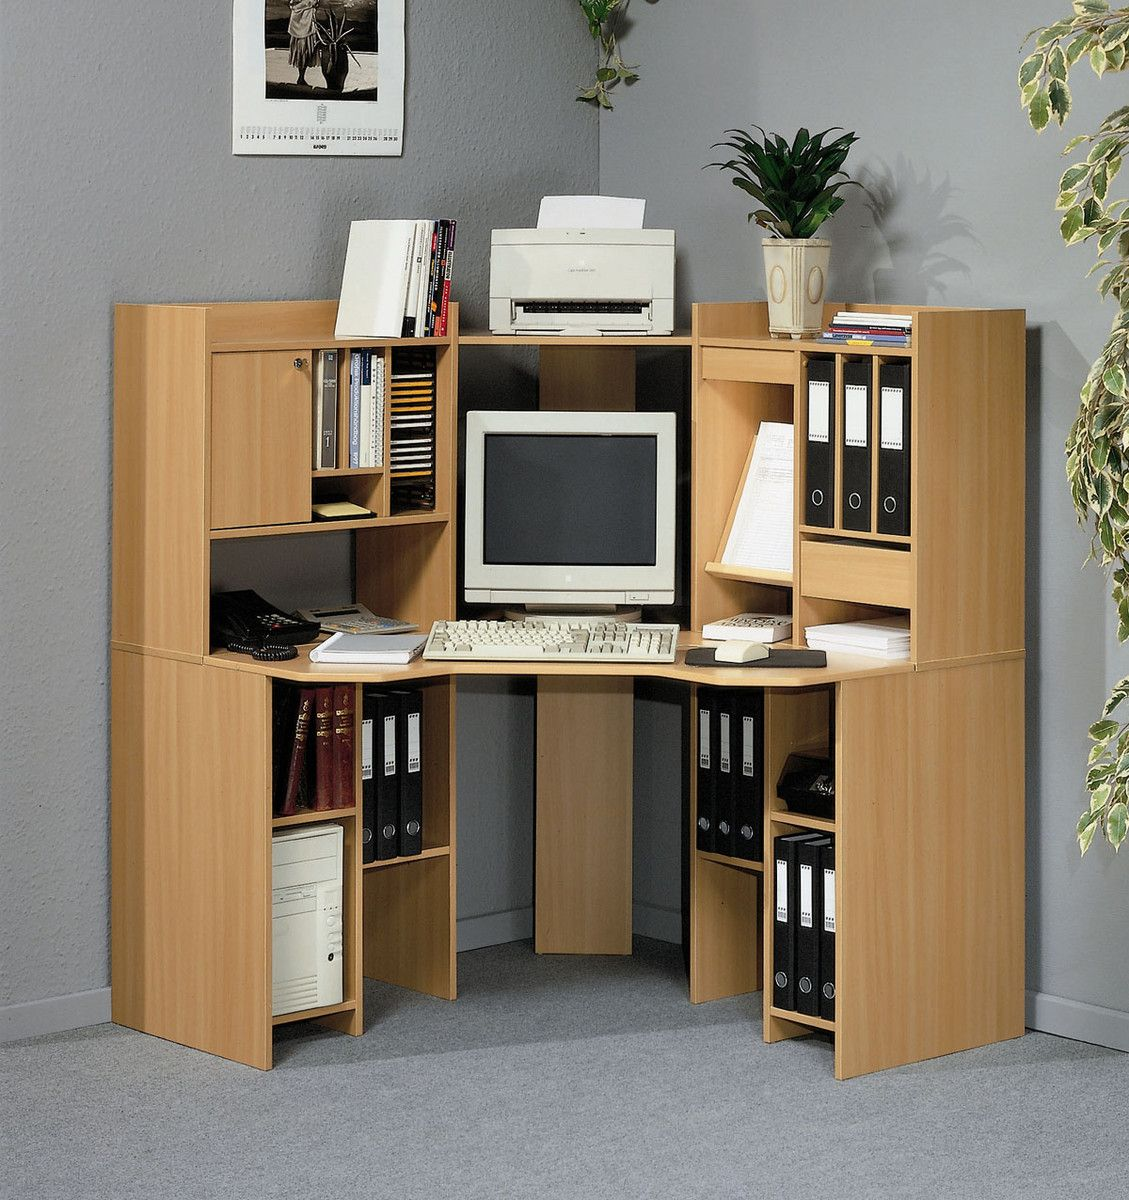 Furniture, Corner Desk Ikea For Home Office Cool Brown Color Material Good  Computer Small Bookshelves Some Books Cool Grey Color Design: The Unique  Designs ... Part 68